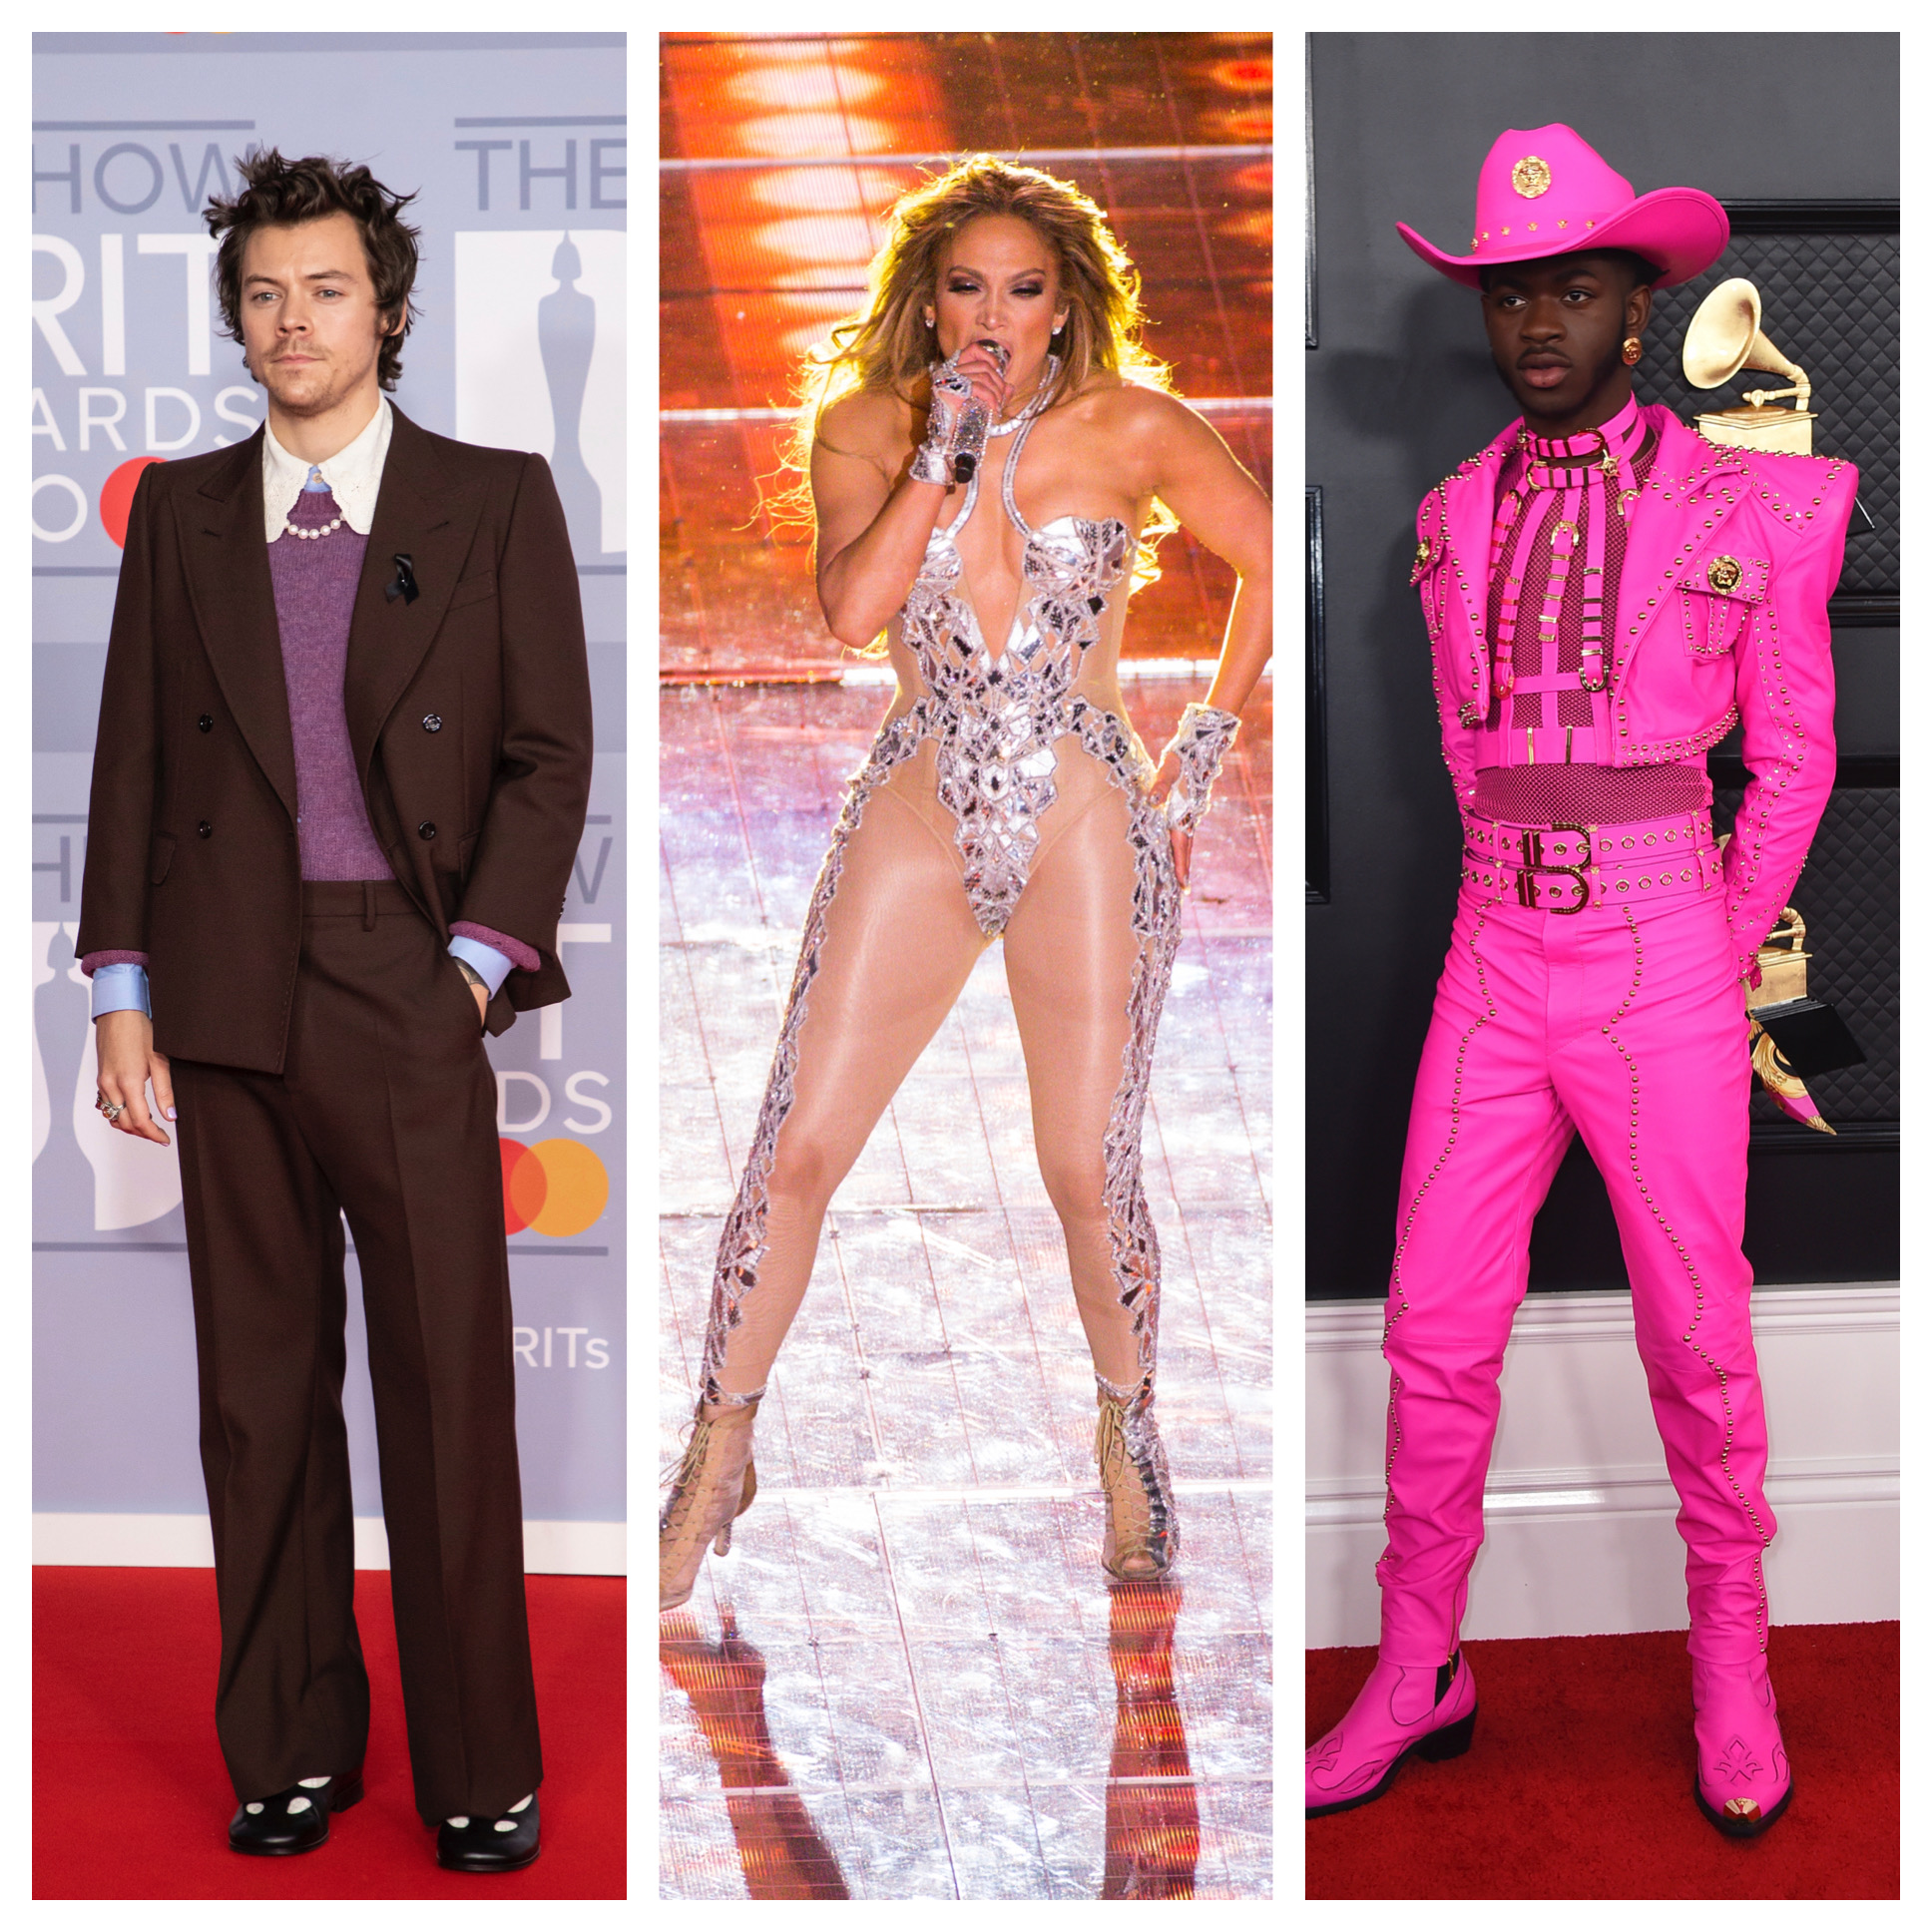 The Top 10 Most-Searched Celebrity Style Moments of 2020